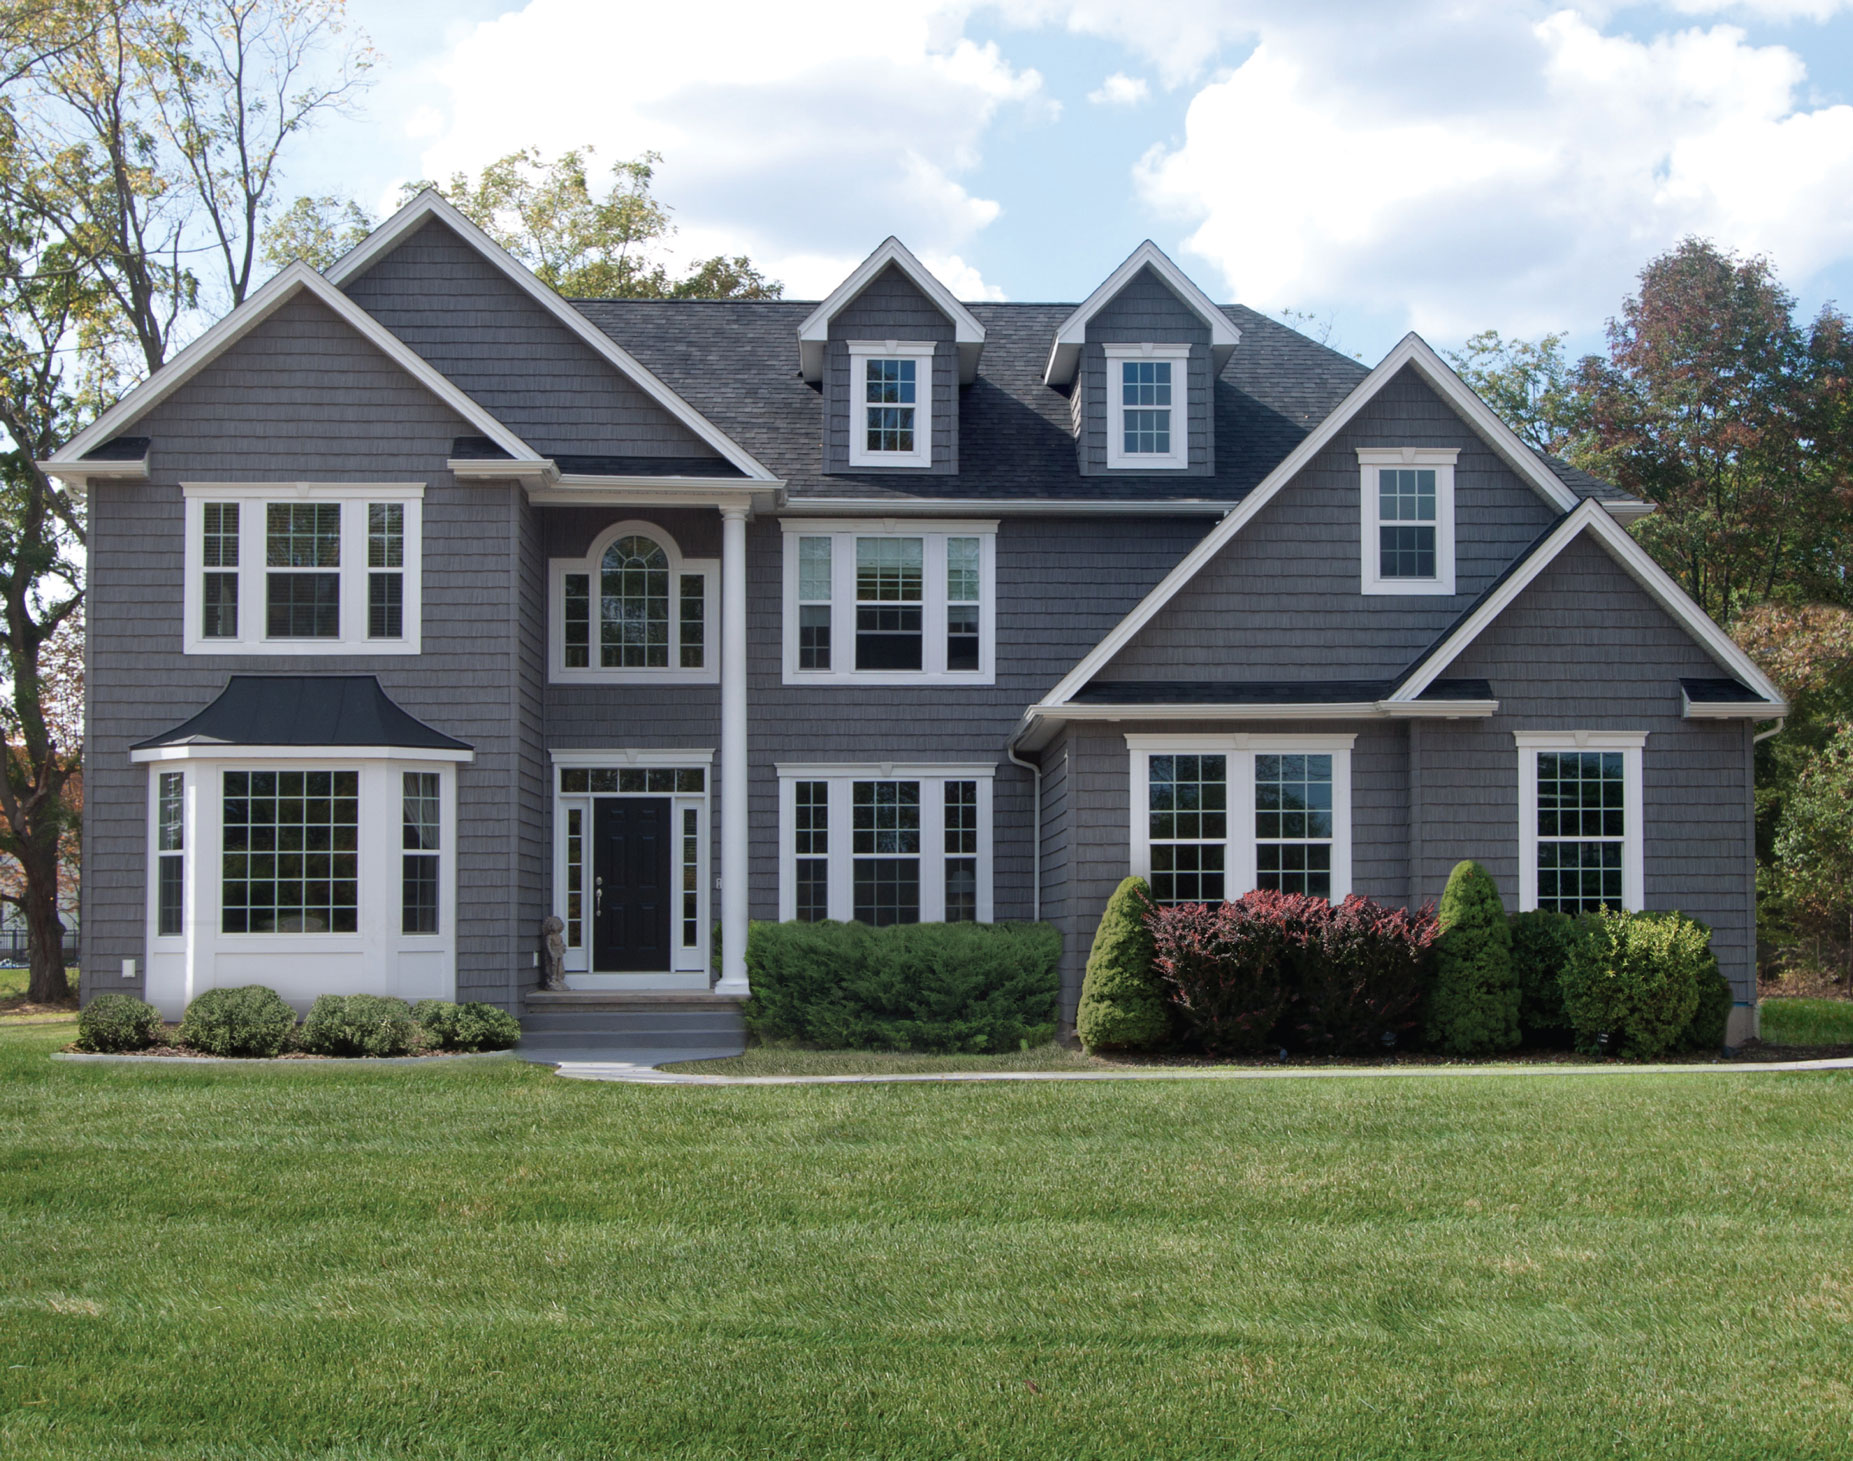 Siding Options for Homes | HomesFeed